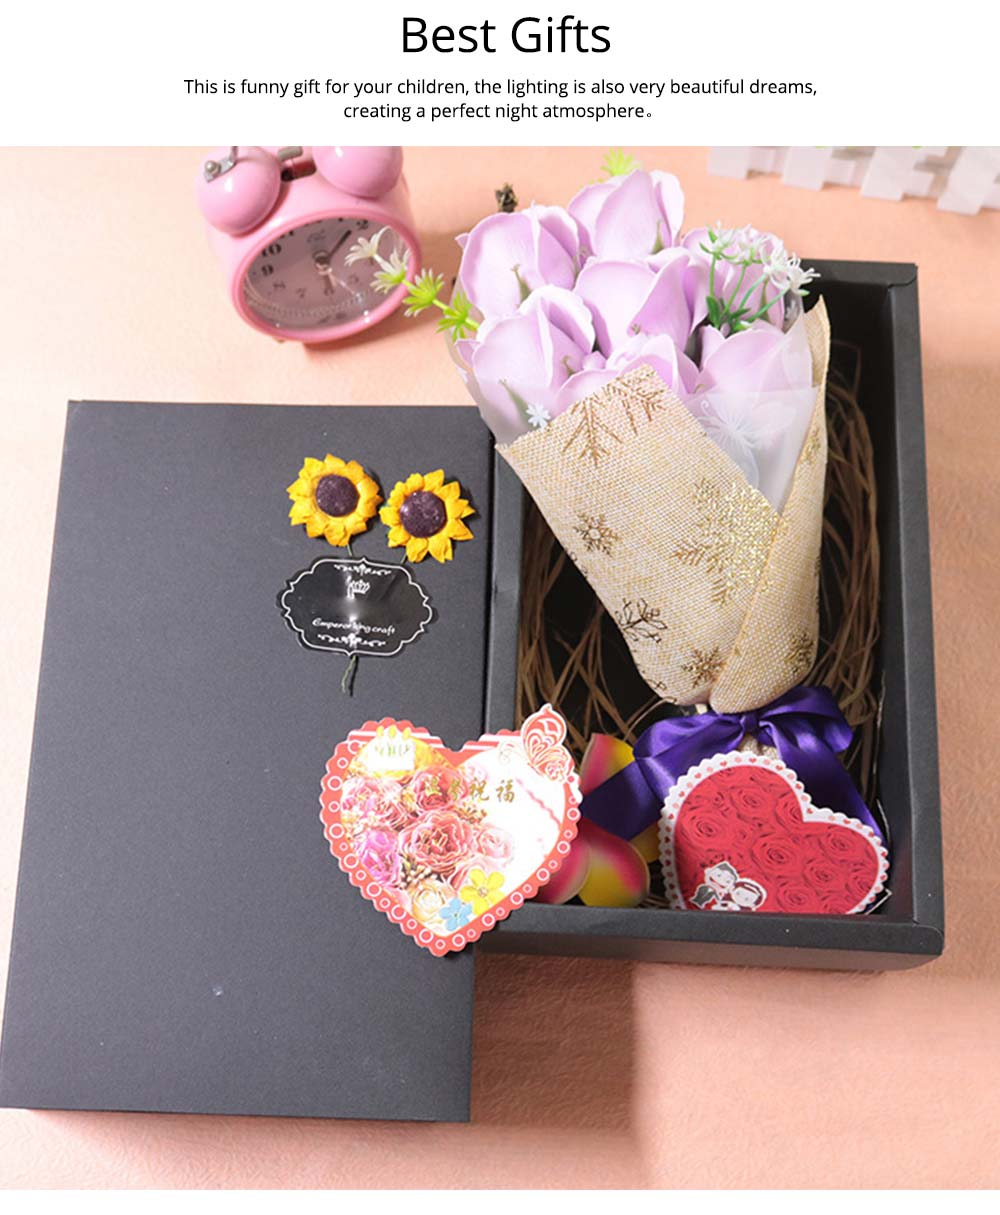 7 Romantic Love Roses Soap Flowers with Black Cardboard Box for Girlfriend Valentine's Day Gift 5